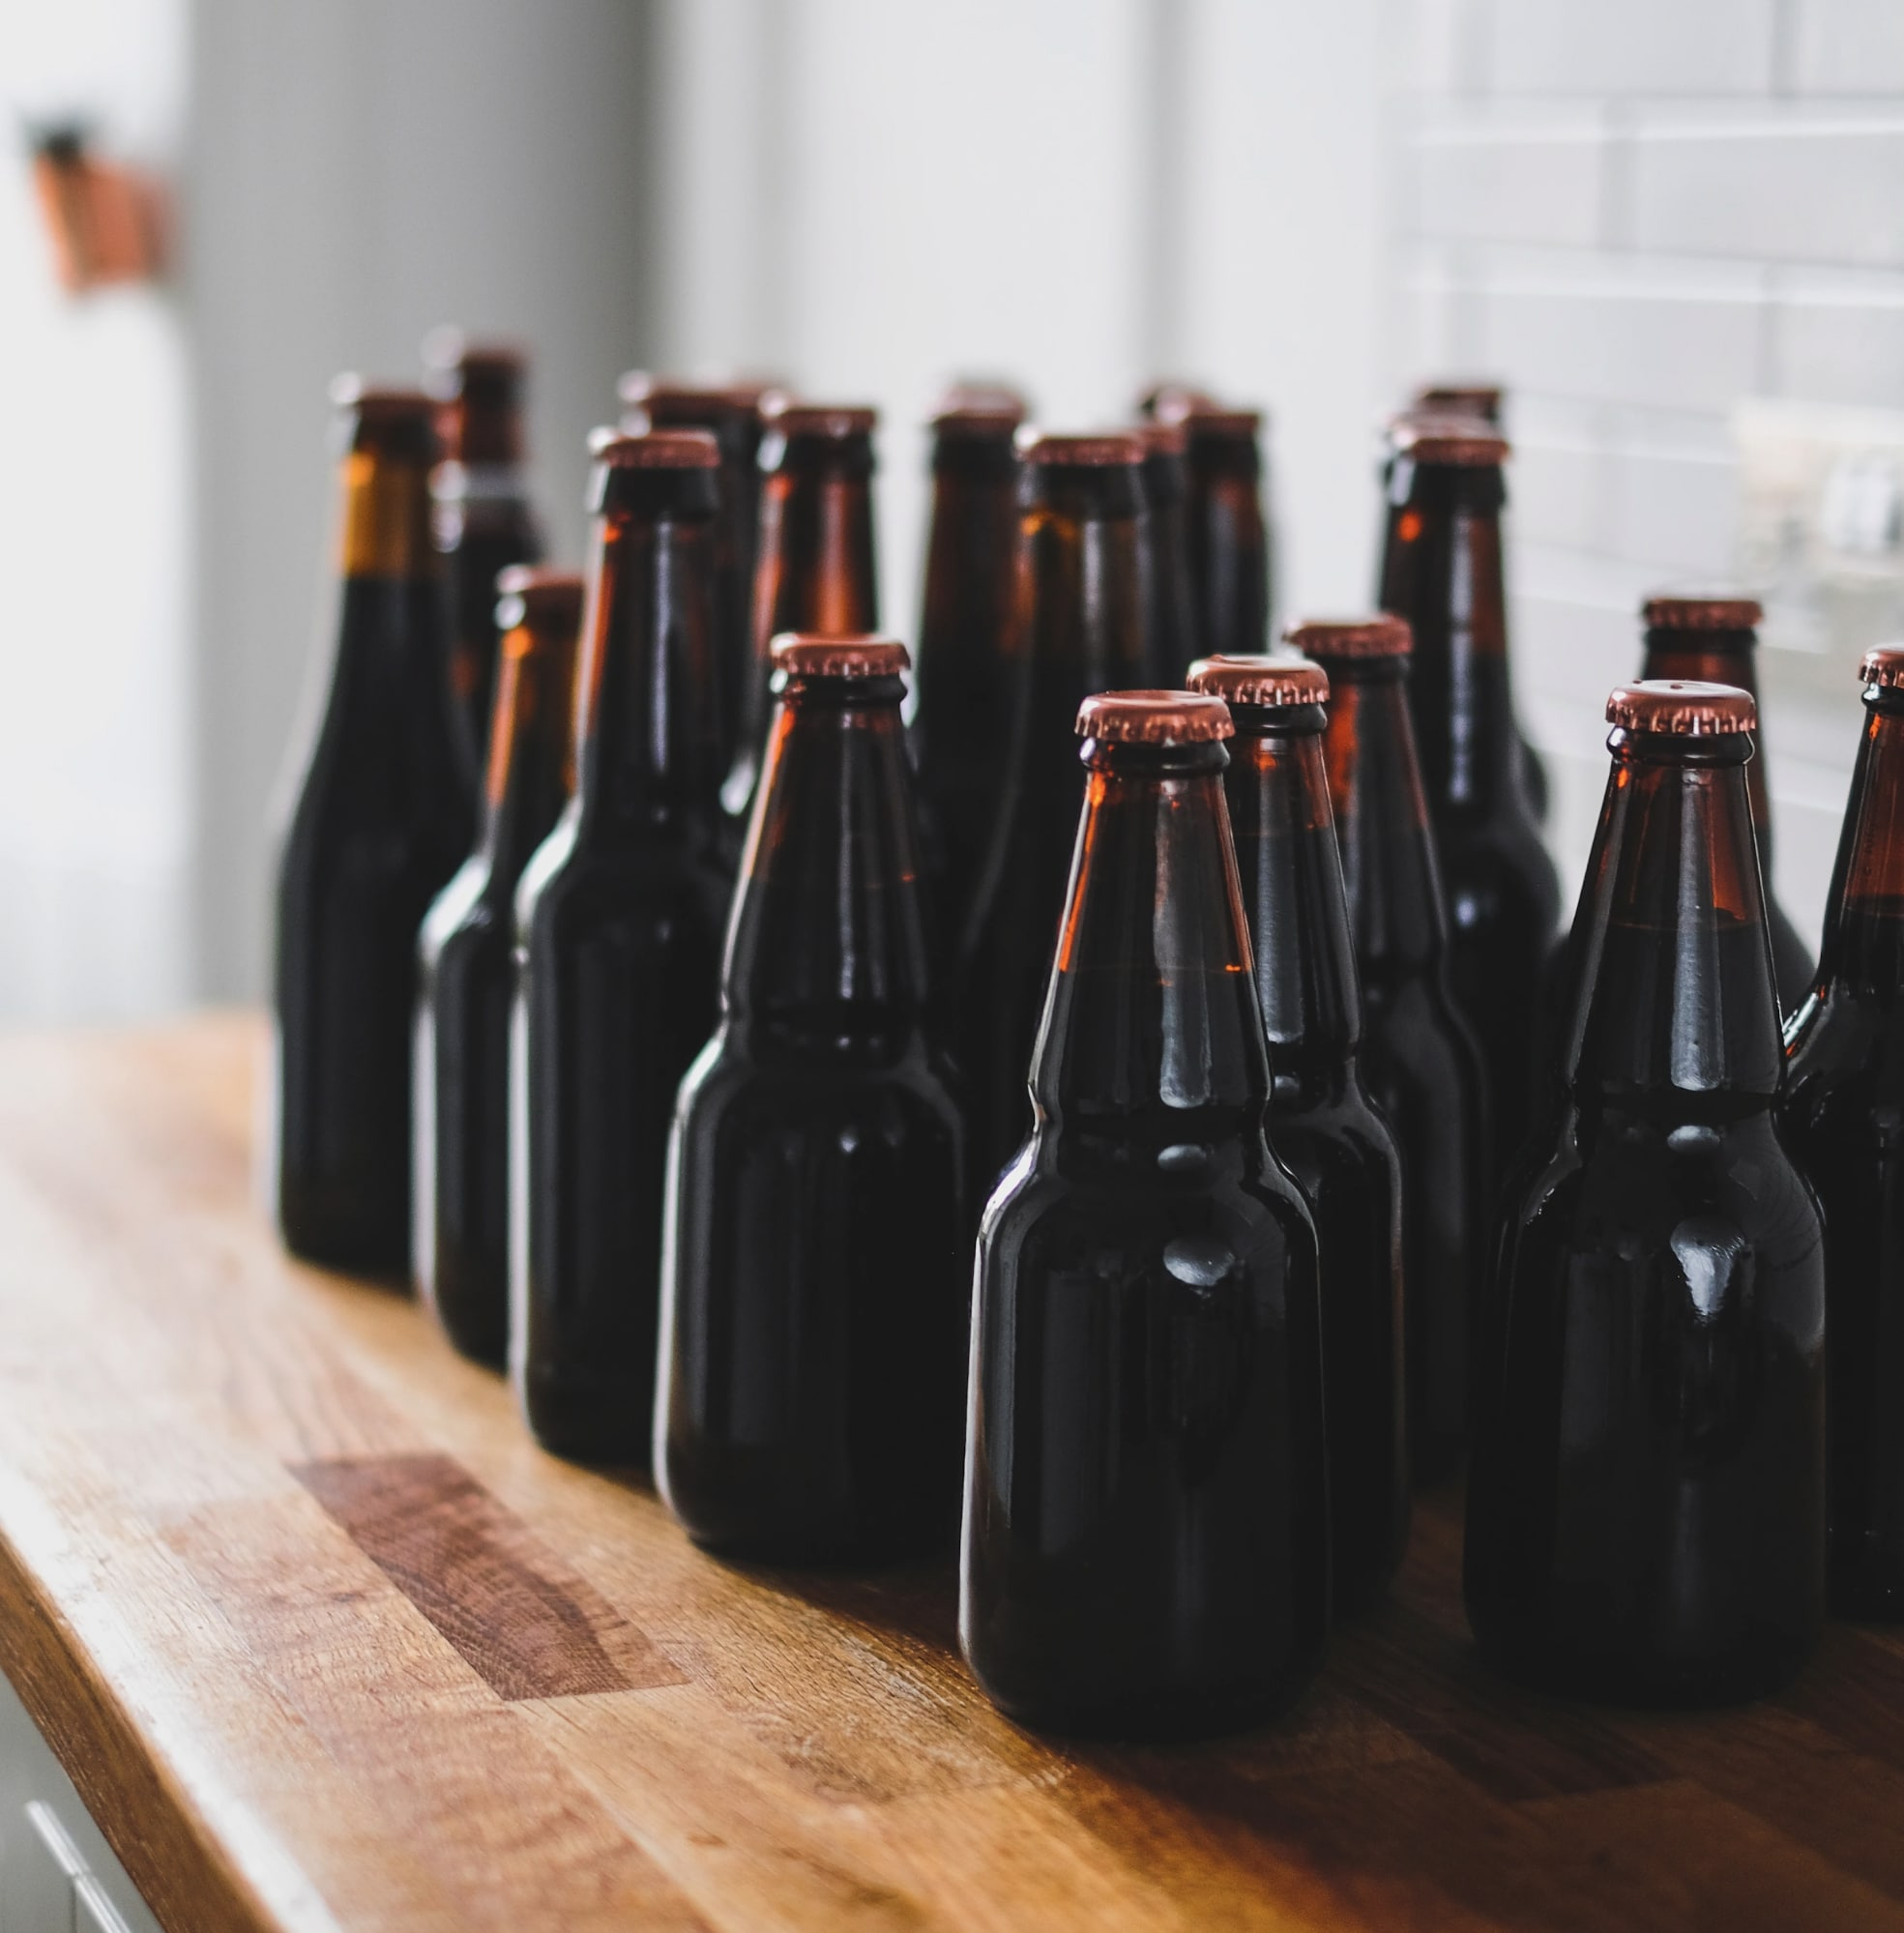 Image of beer bottles on a table